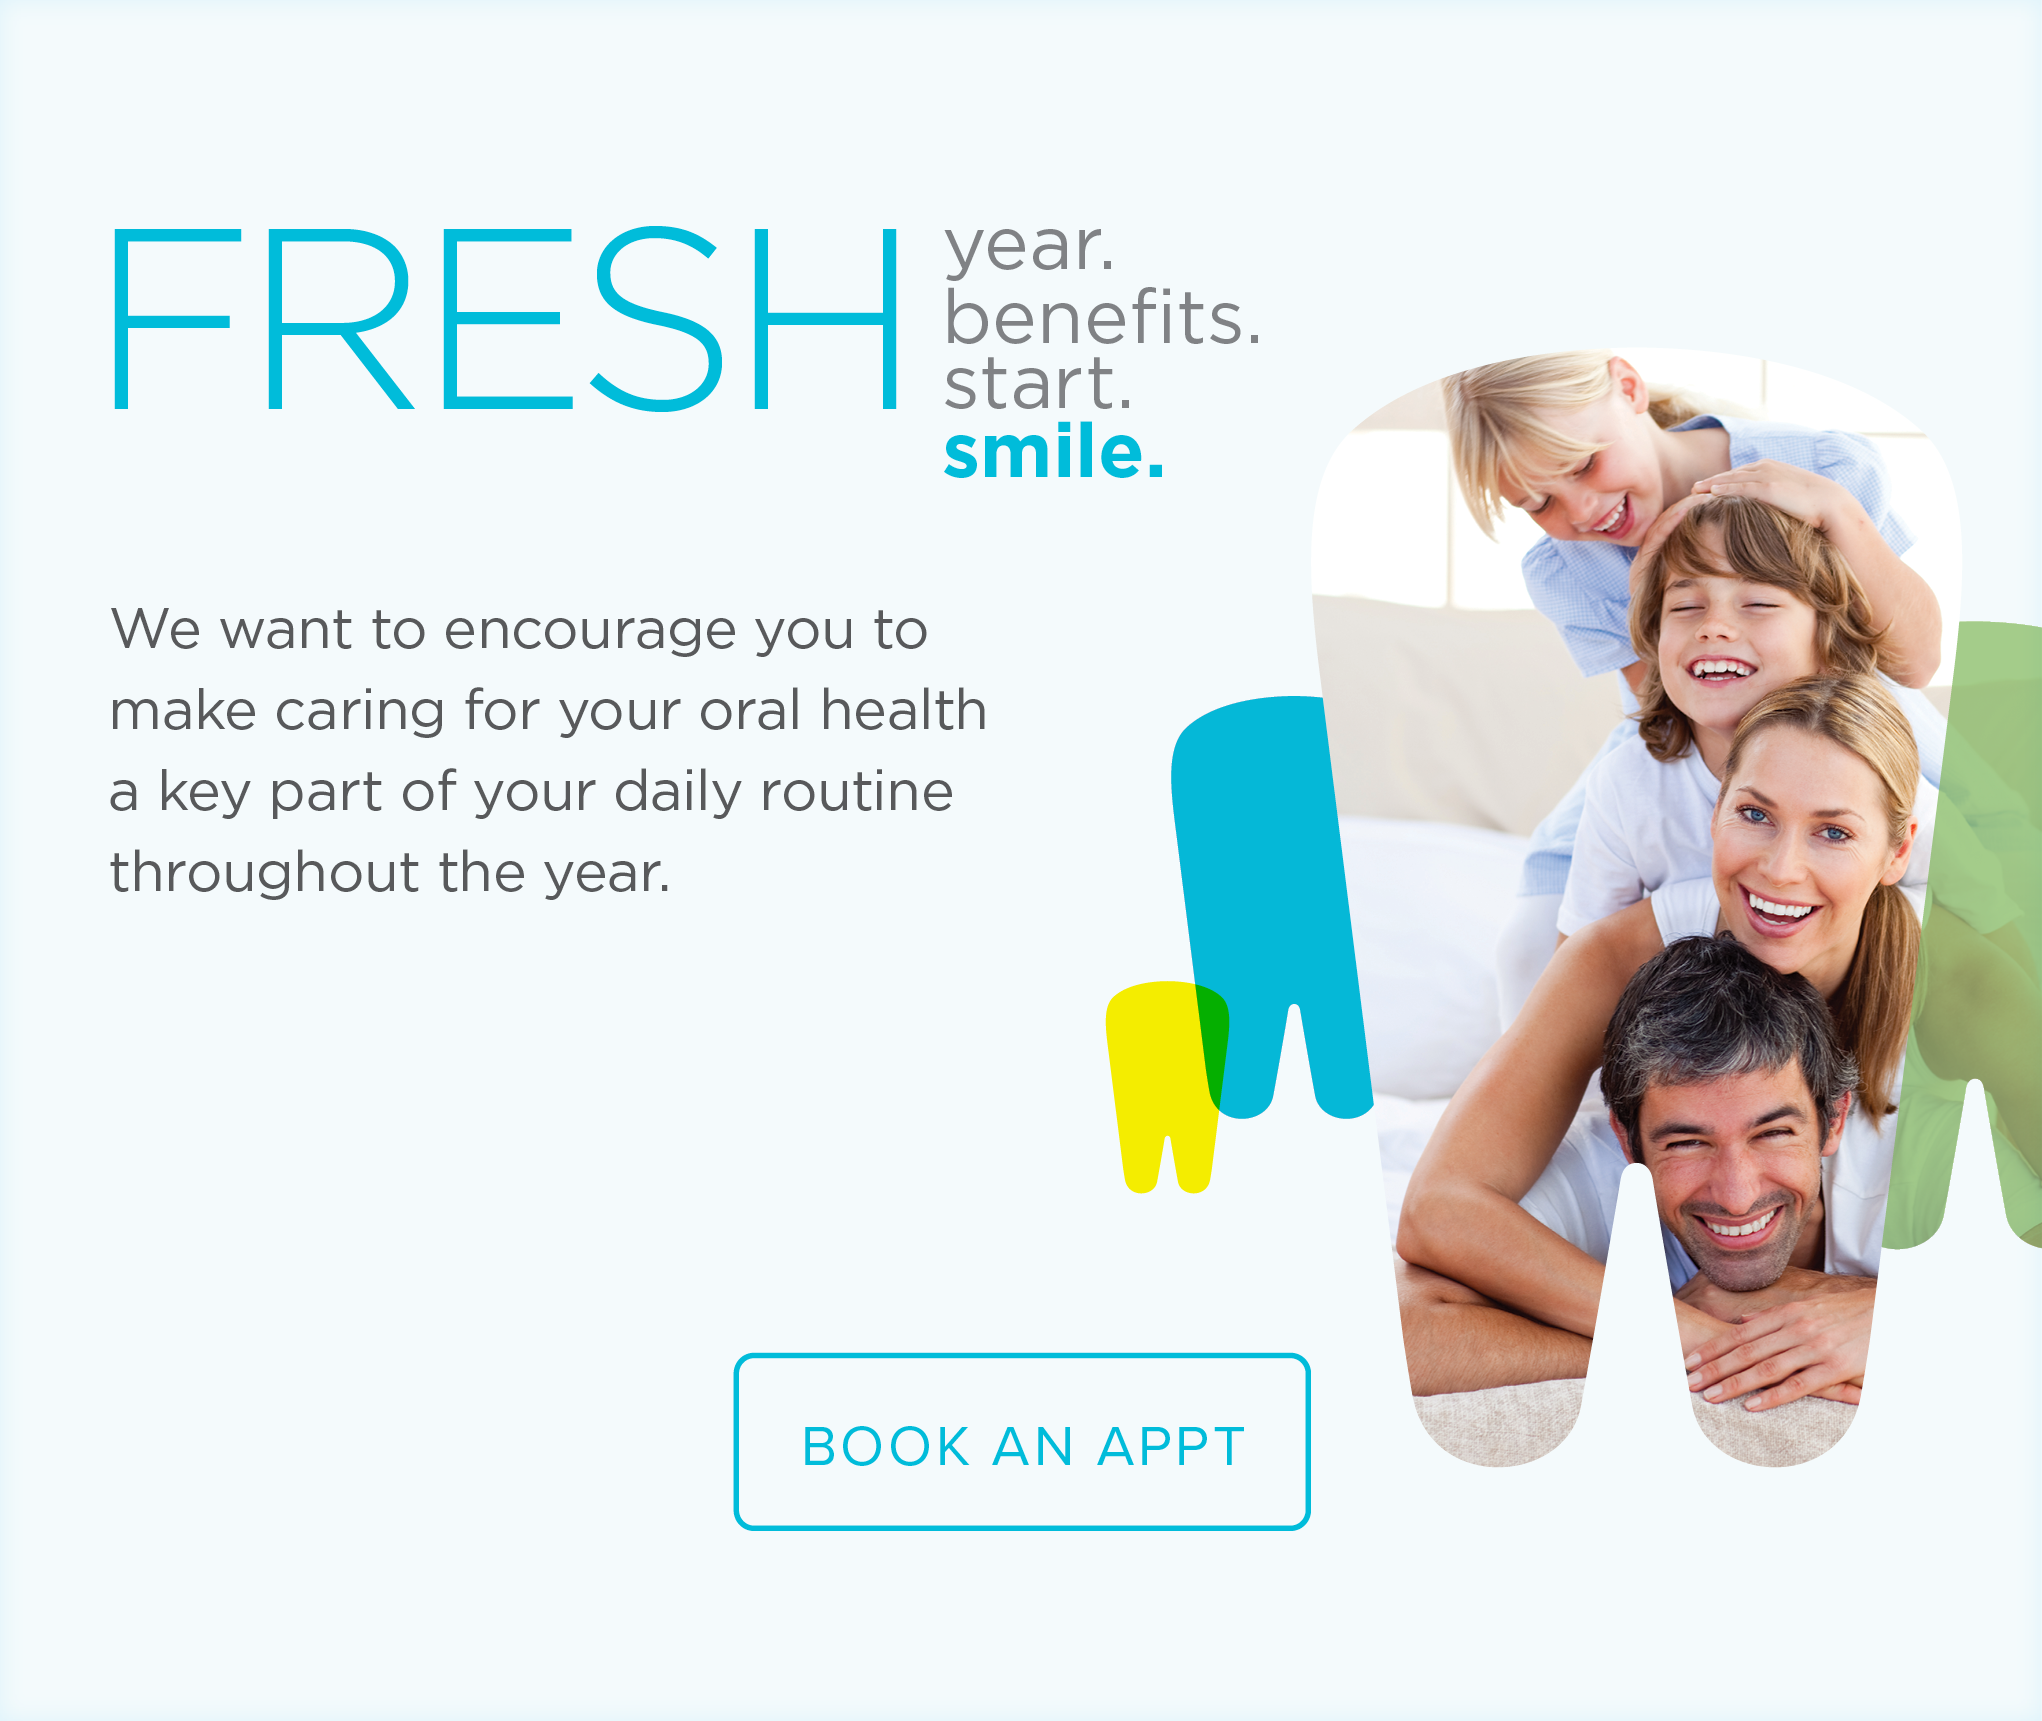 Empire Dental Group and Orthodontics - Make the Most of Your Benefits